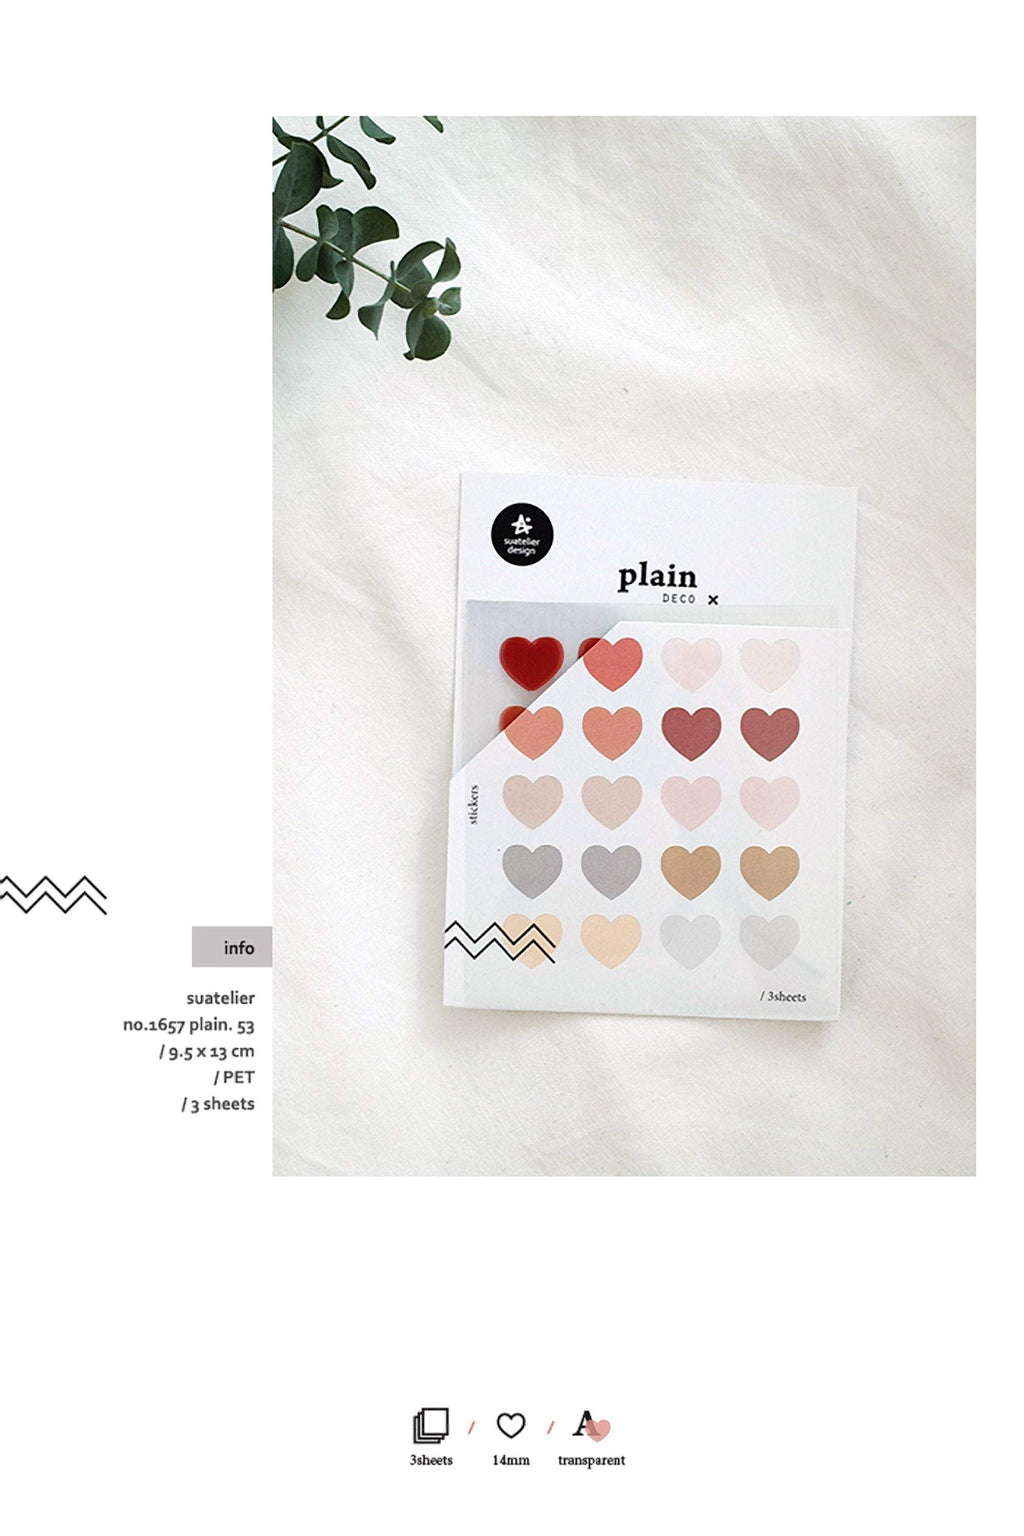 Suatelier Translucent Planner Stickers 1657 | Plain Shapes 53 Heart Translucent Stickers - The Stationery Life!